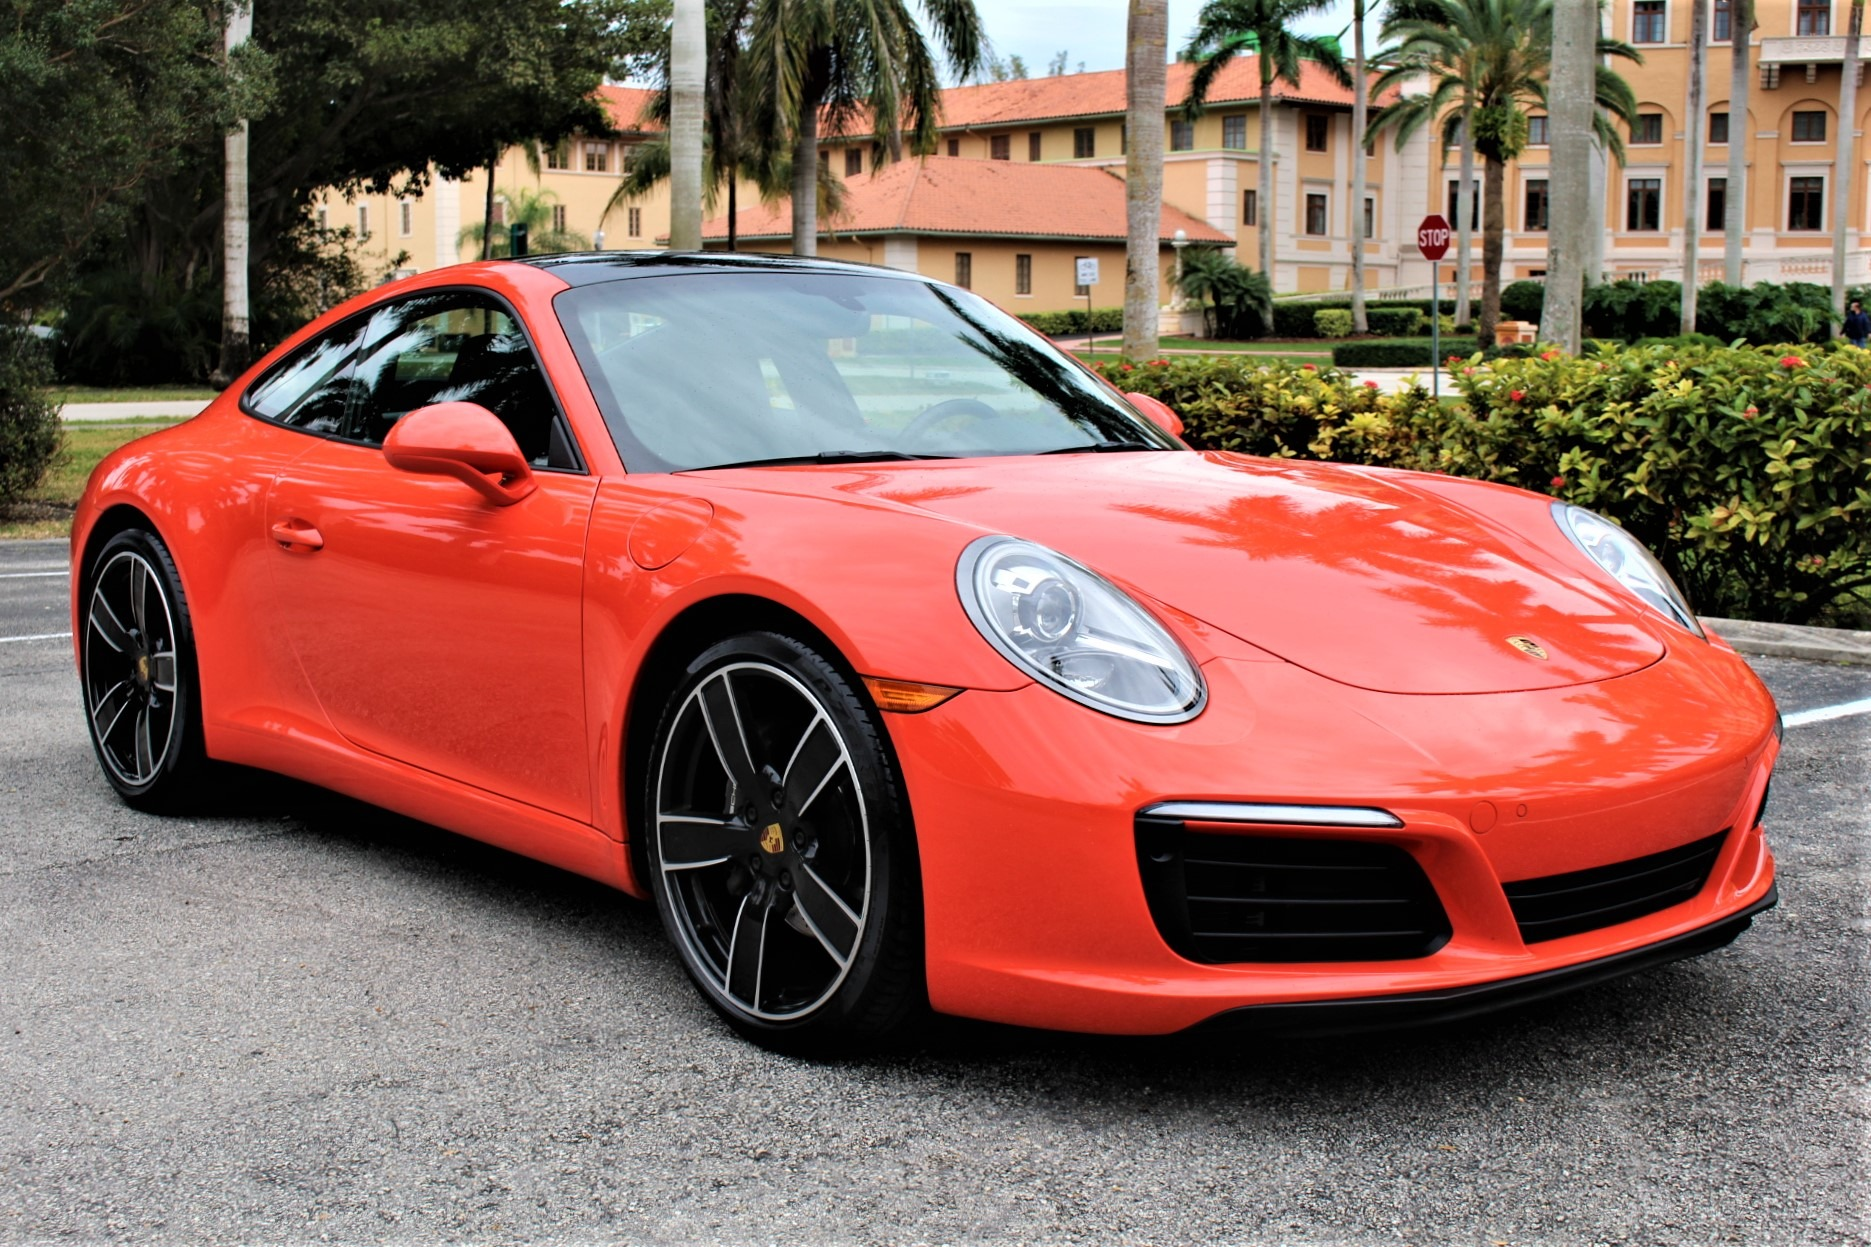 Used 2017 Porsche 911 Carrera for sale $89,850 at The Gables Sports Cars in Miami FL 33146 3